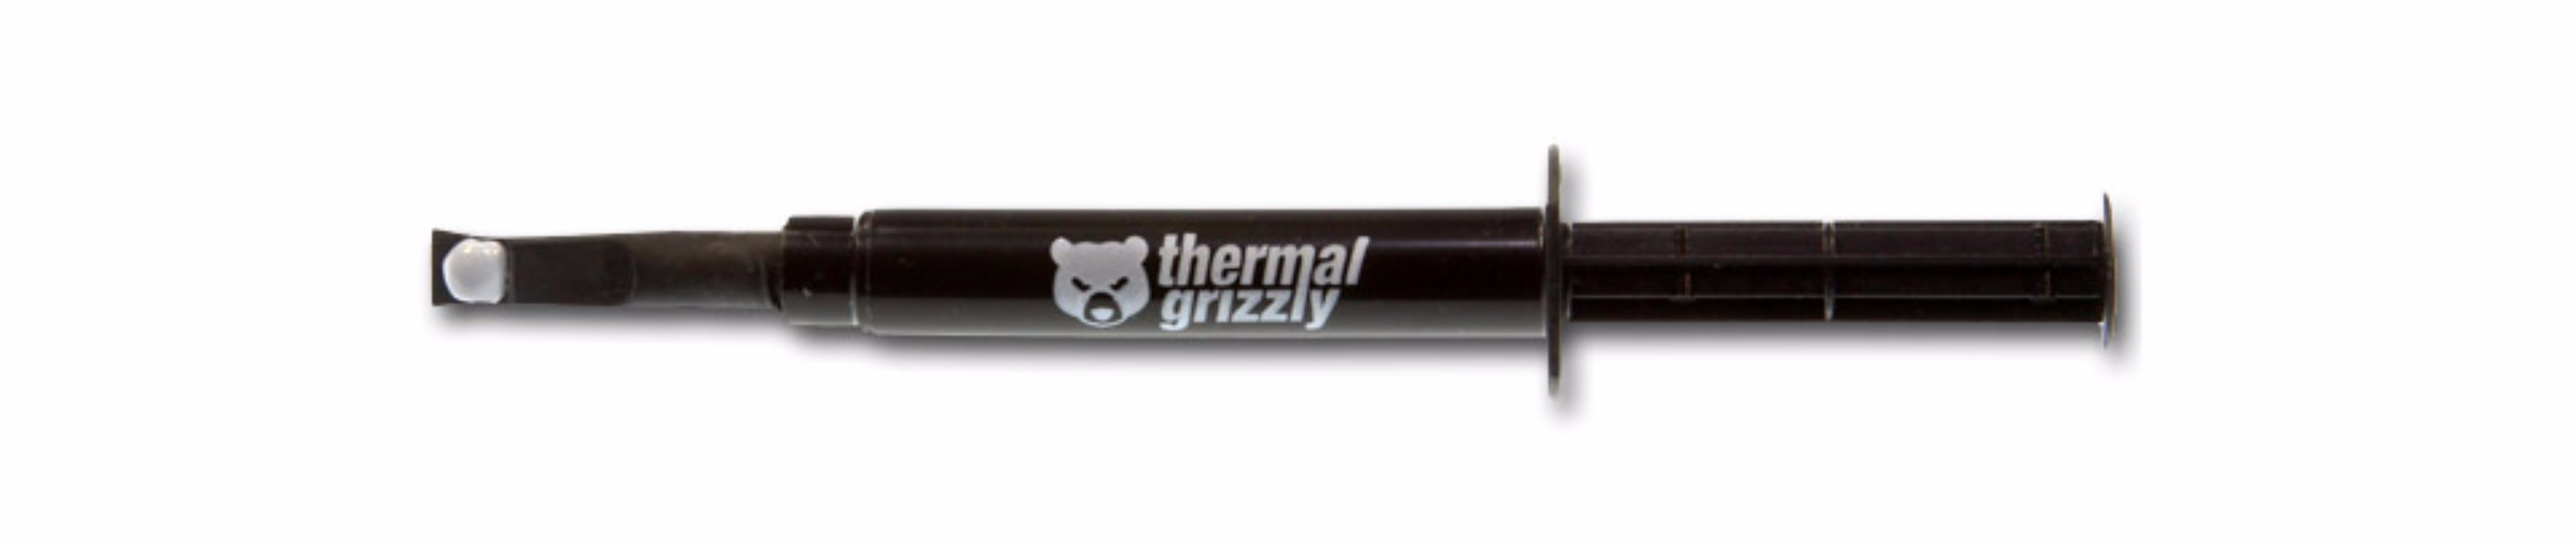 Thermal Grizzly - Pasta Térmica Thermal Grizzly Aeronaut (7.8g)